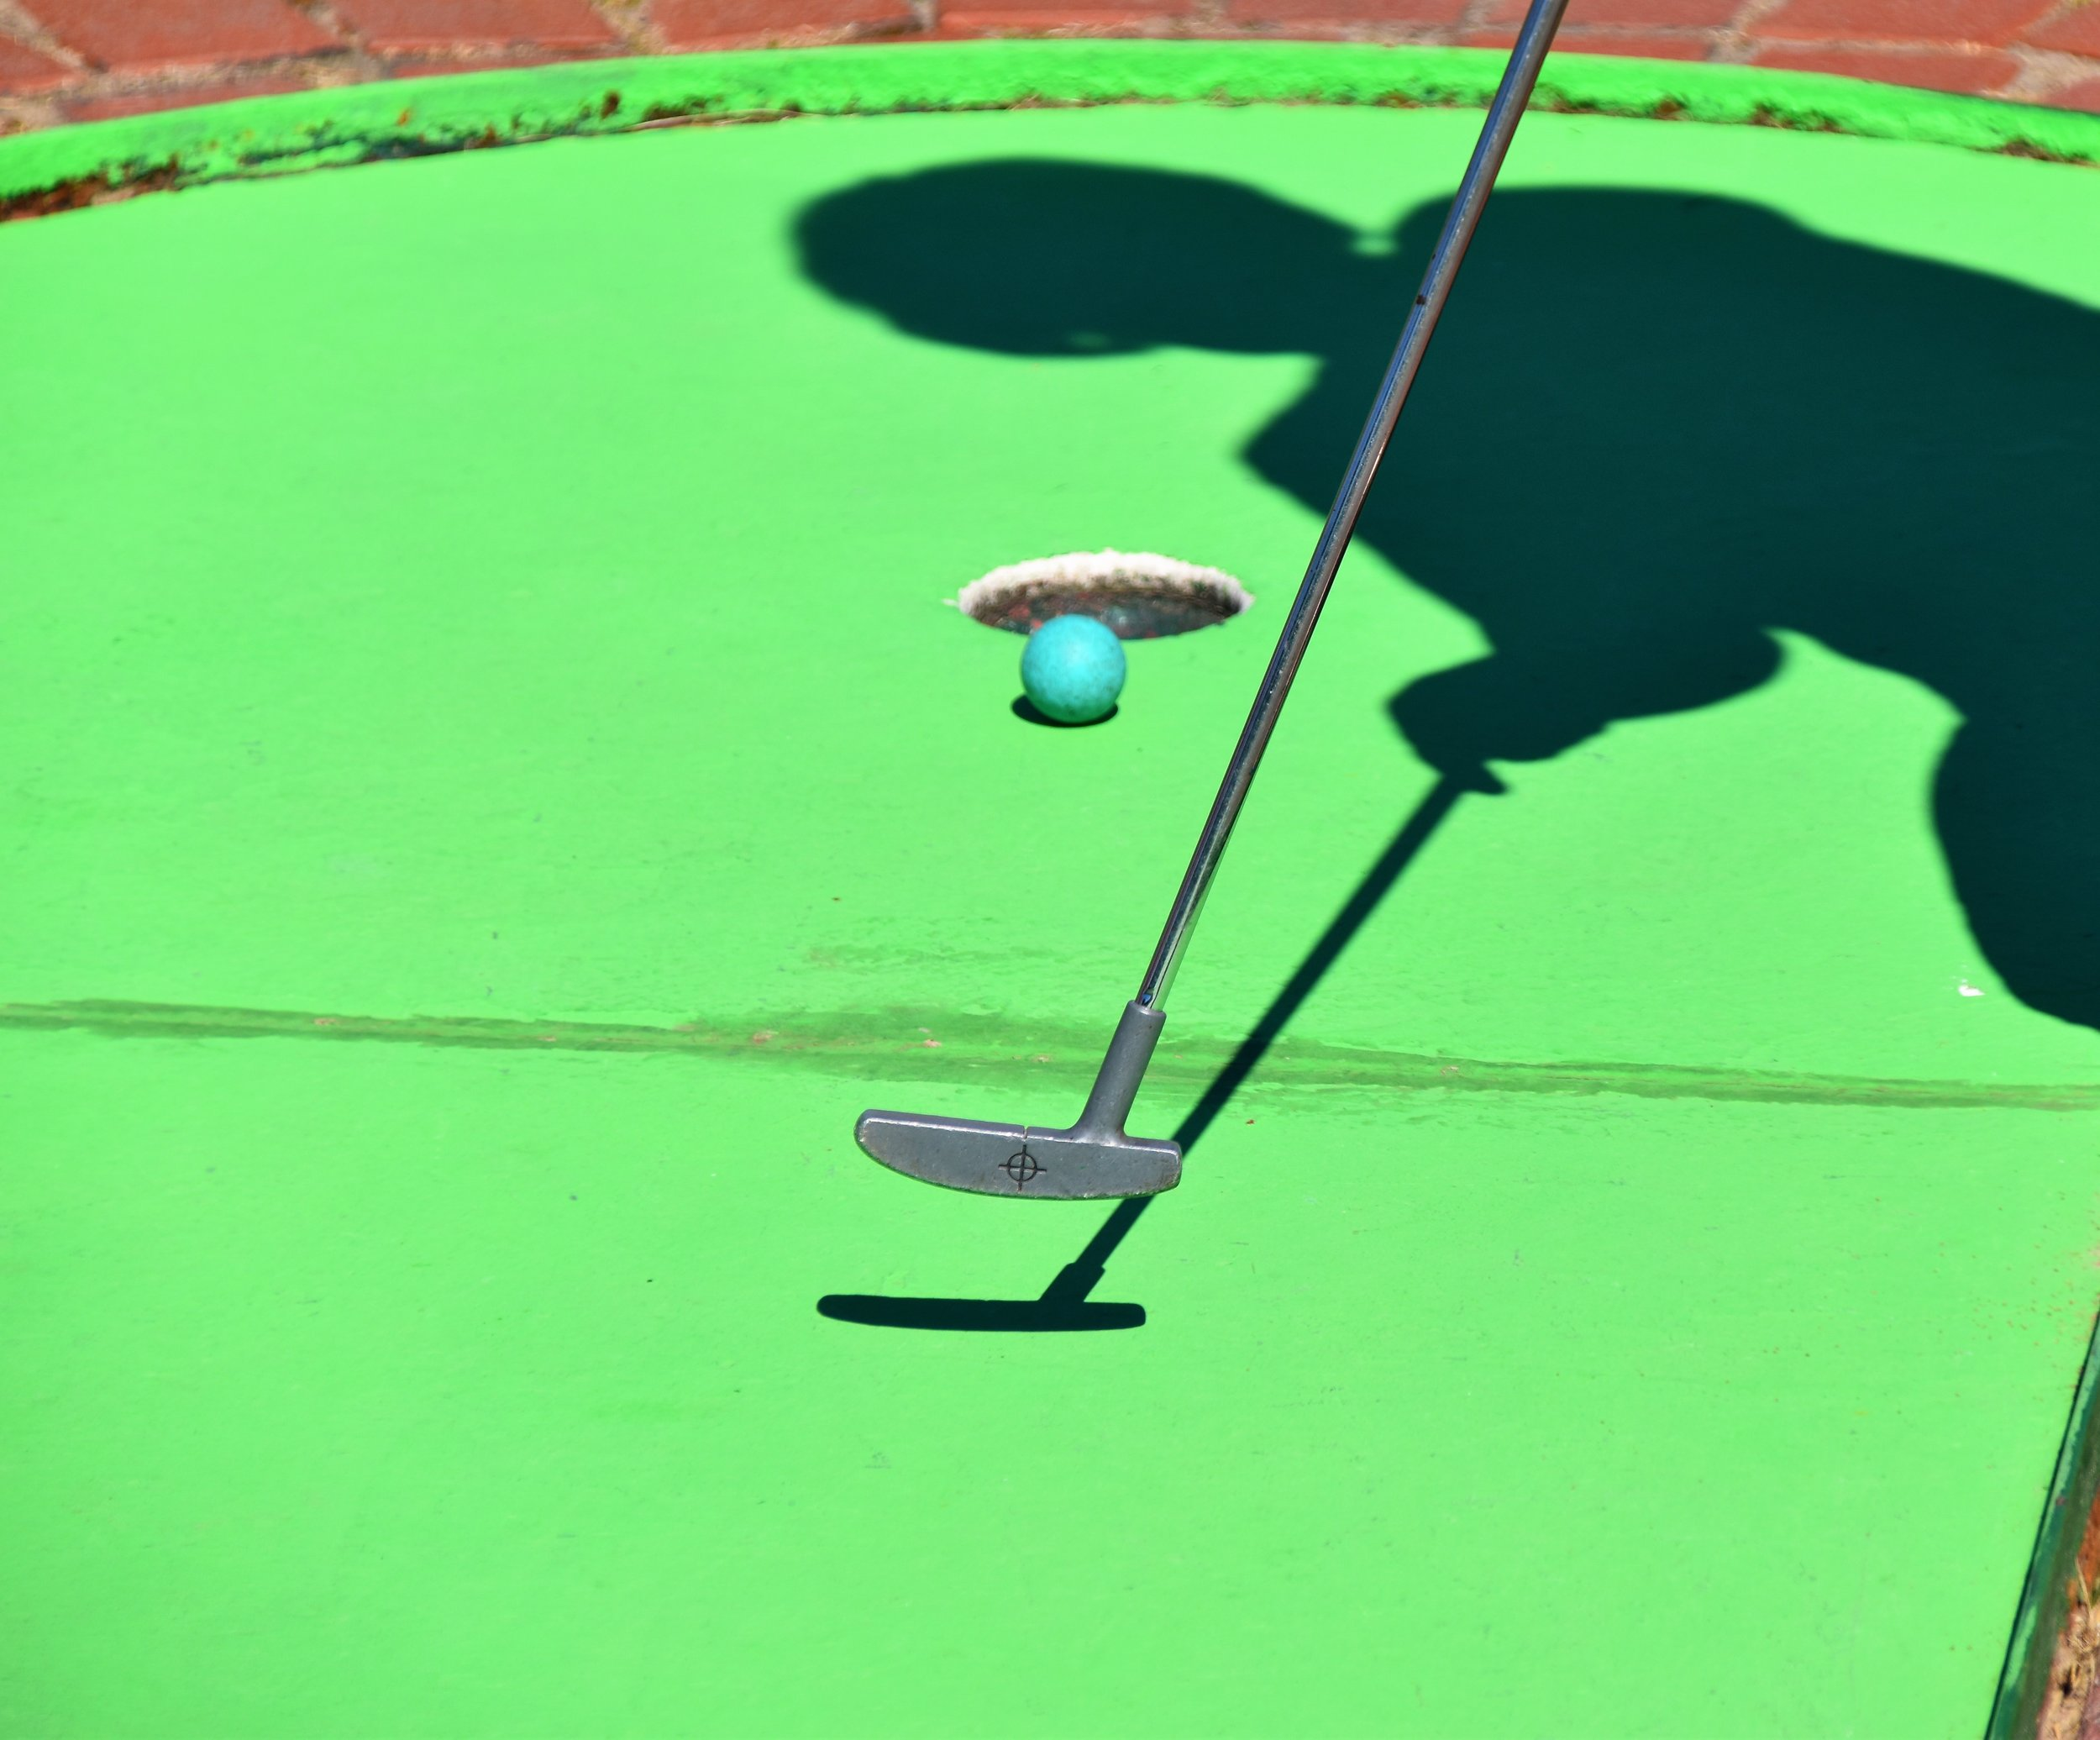 Mini Golf is an easy putt when looking for summer fun.